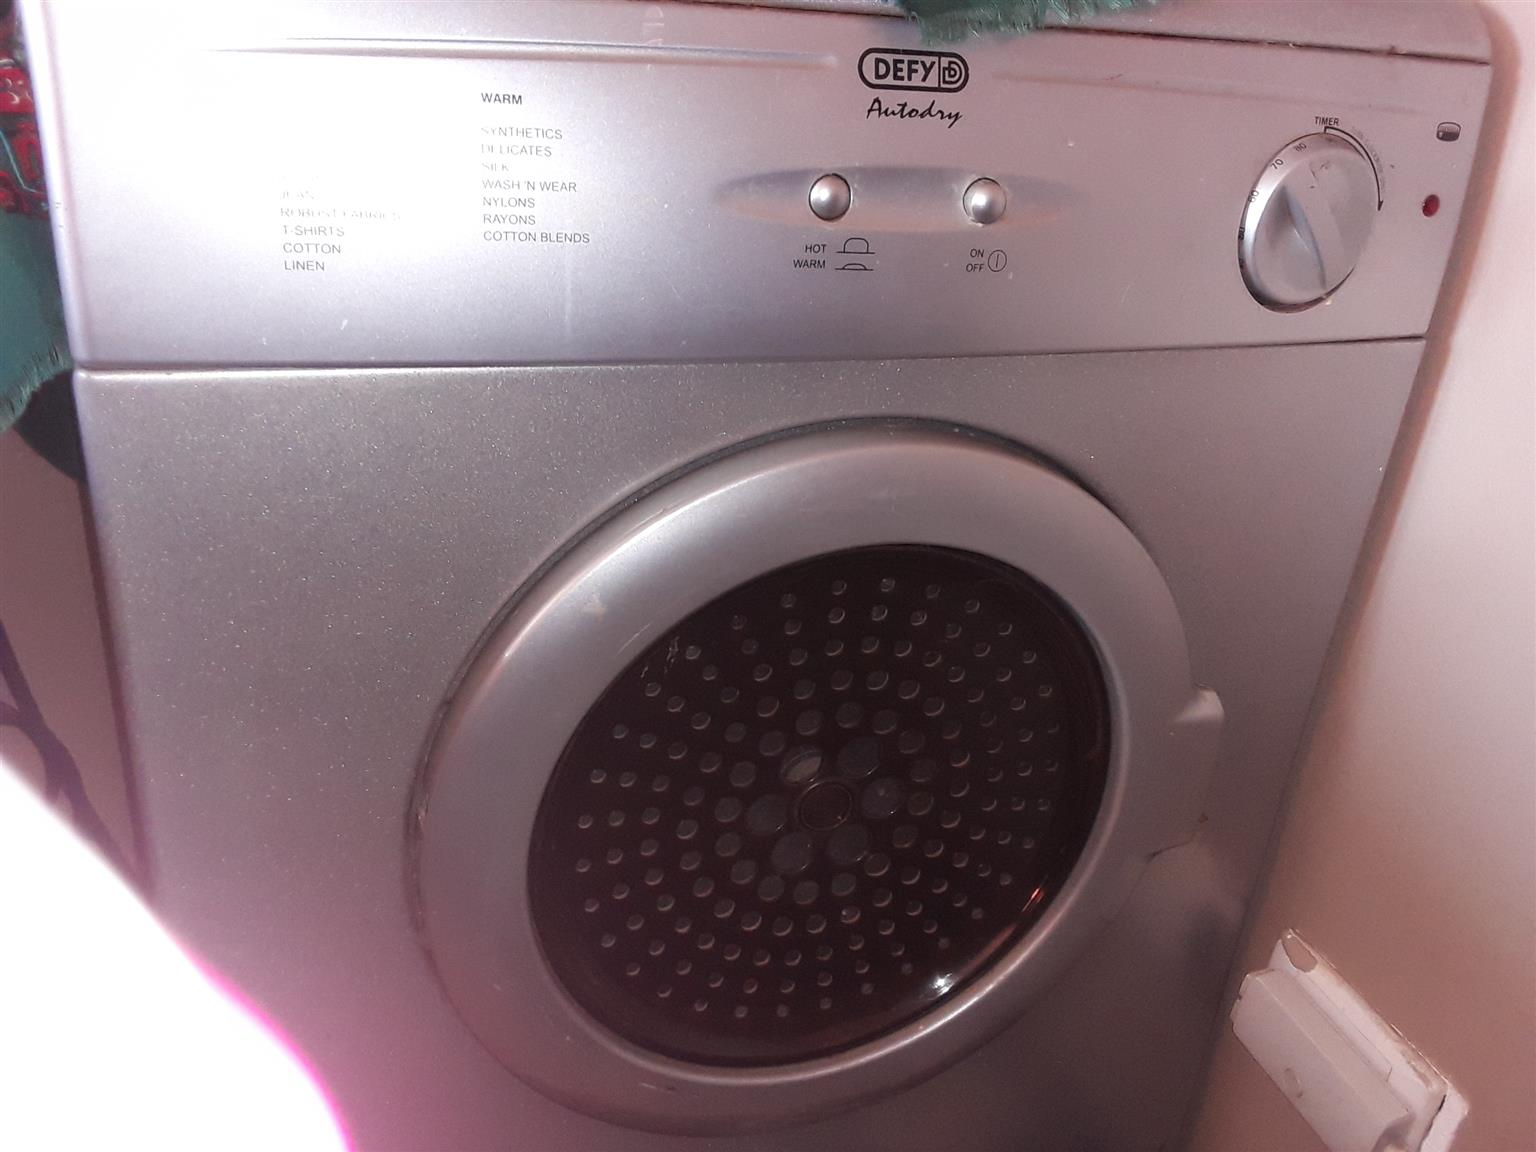 Defy tumble dryer silver just needs new fan belt they cost